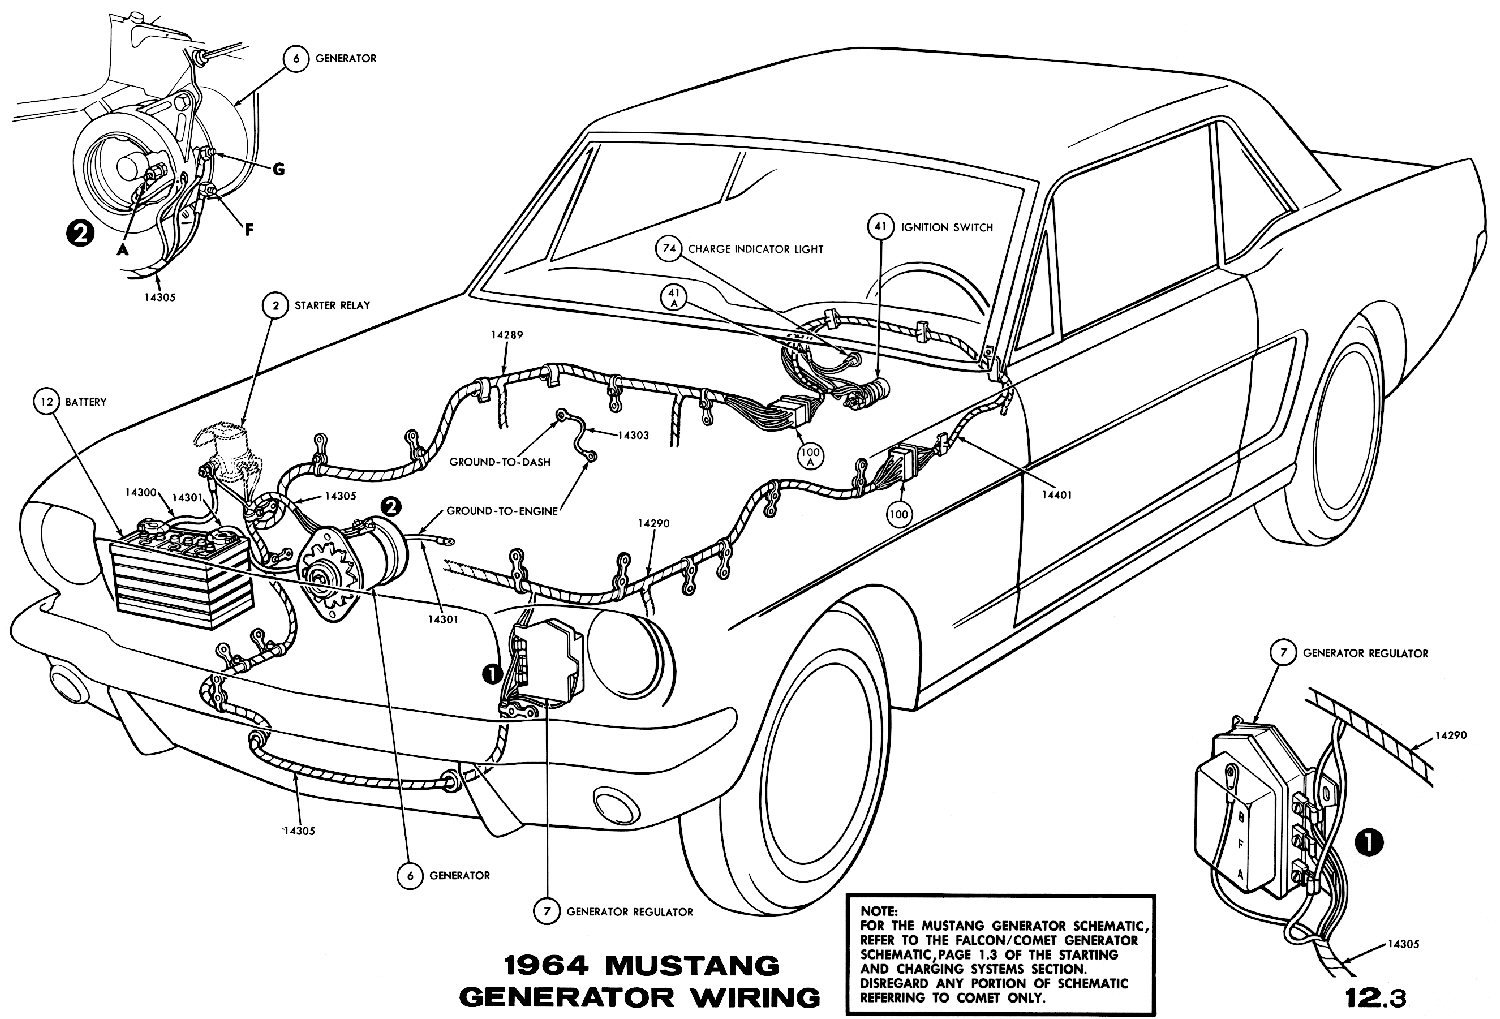 1955 Ford Generator Wiring Diagram Library 1967 Mustang Voltage Regulator Data Thunderbird